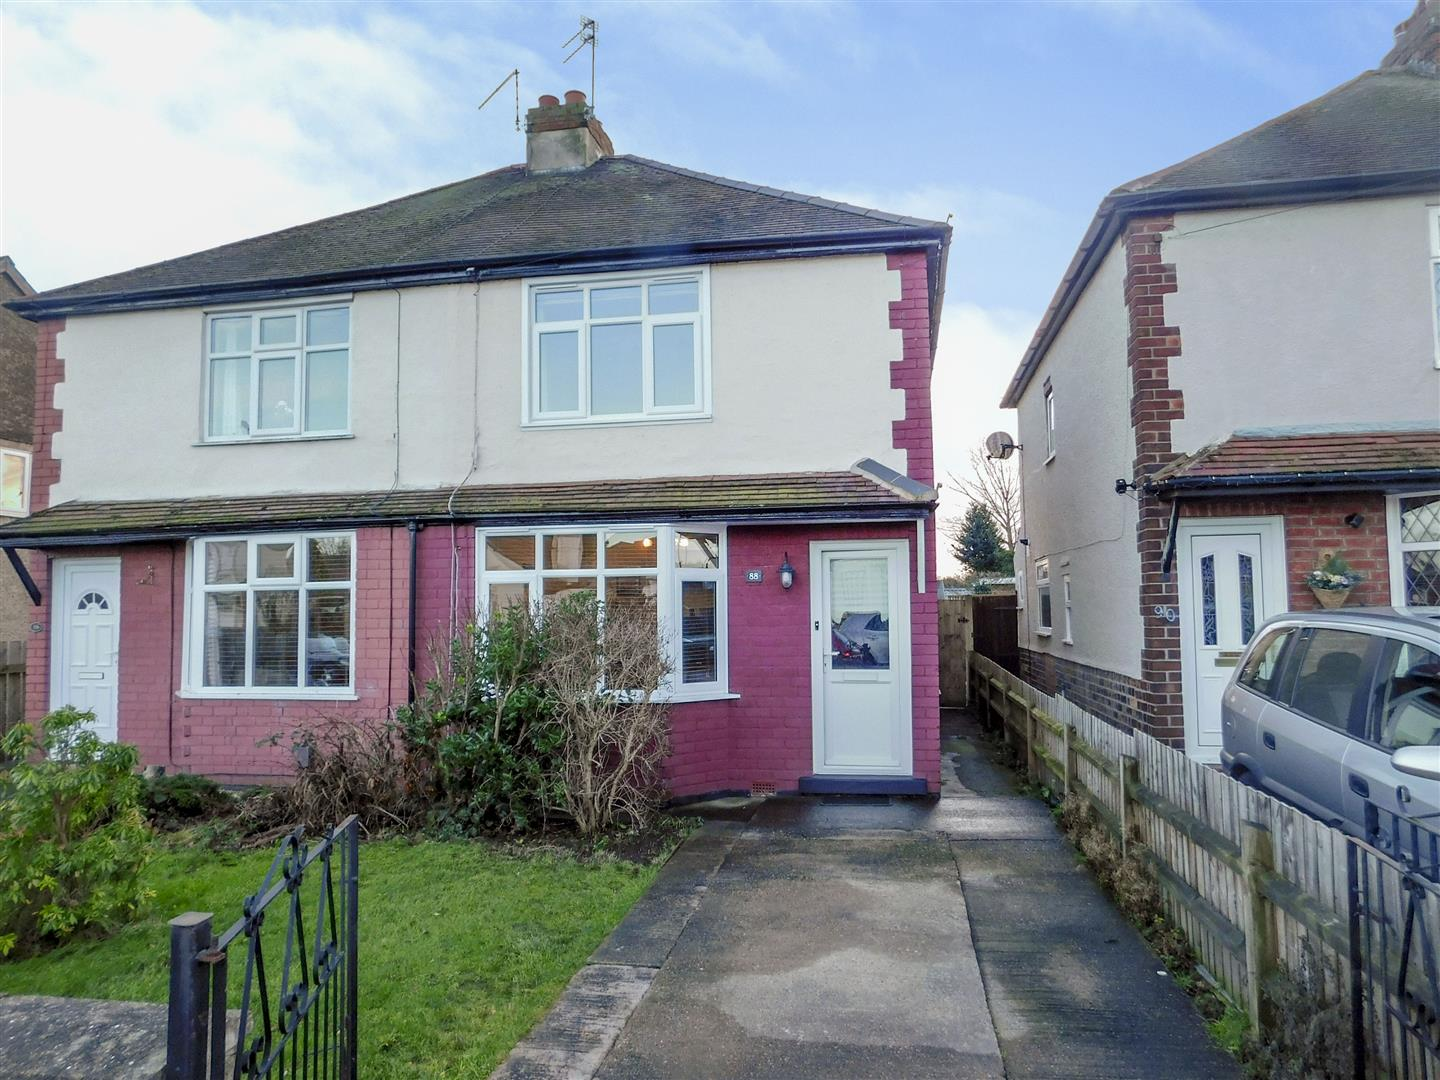 2 Bedrooms Semi Detached House for sale in Portland Road, Toton